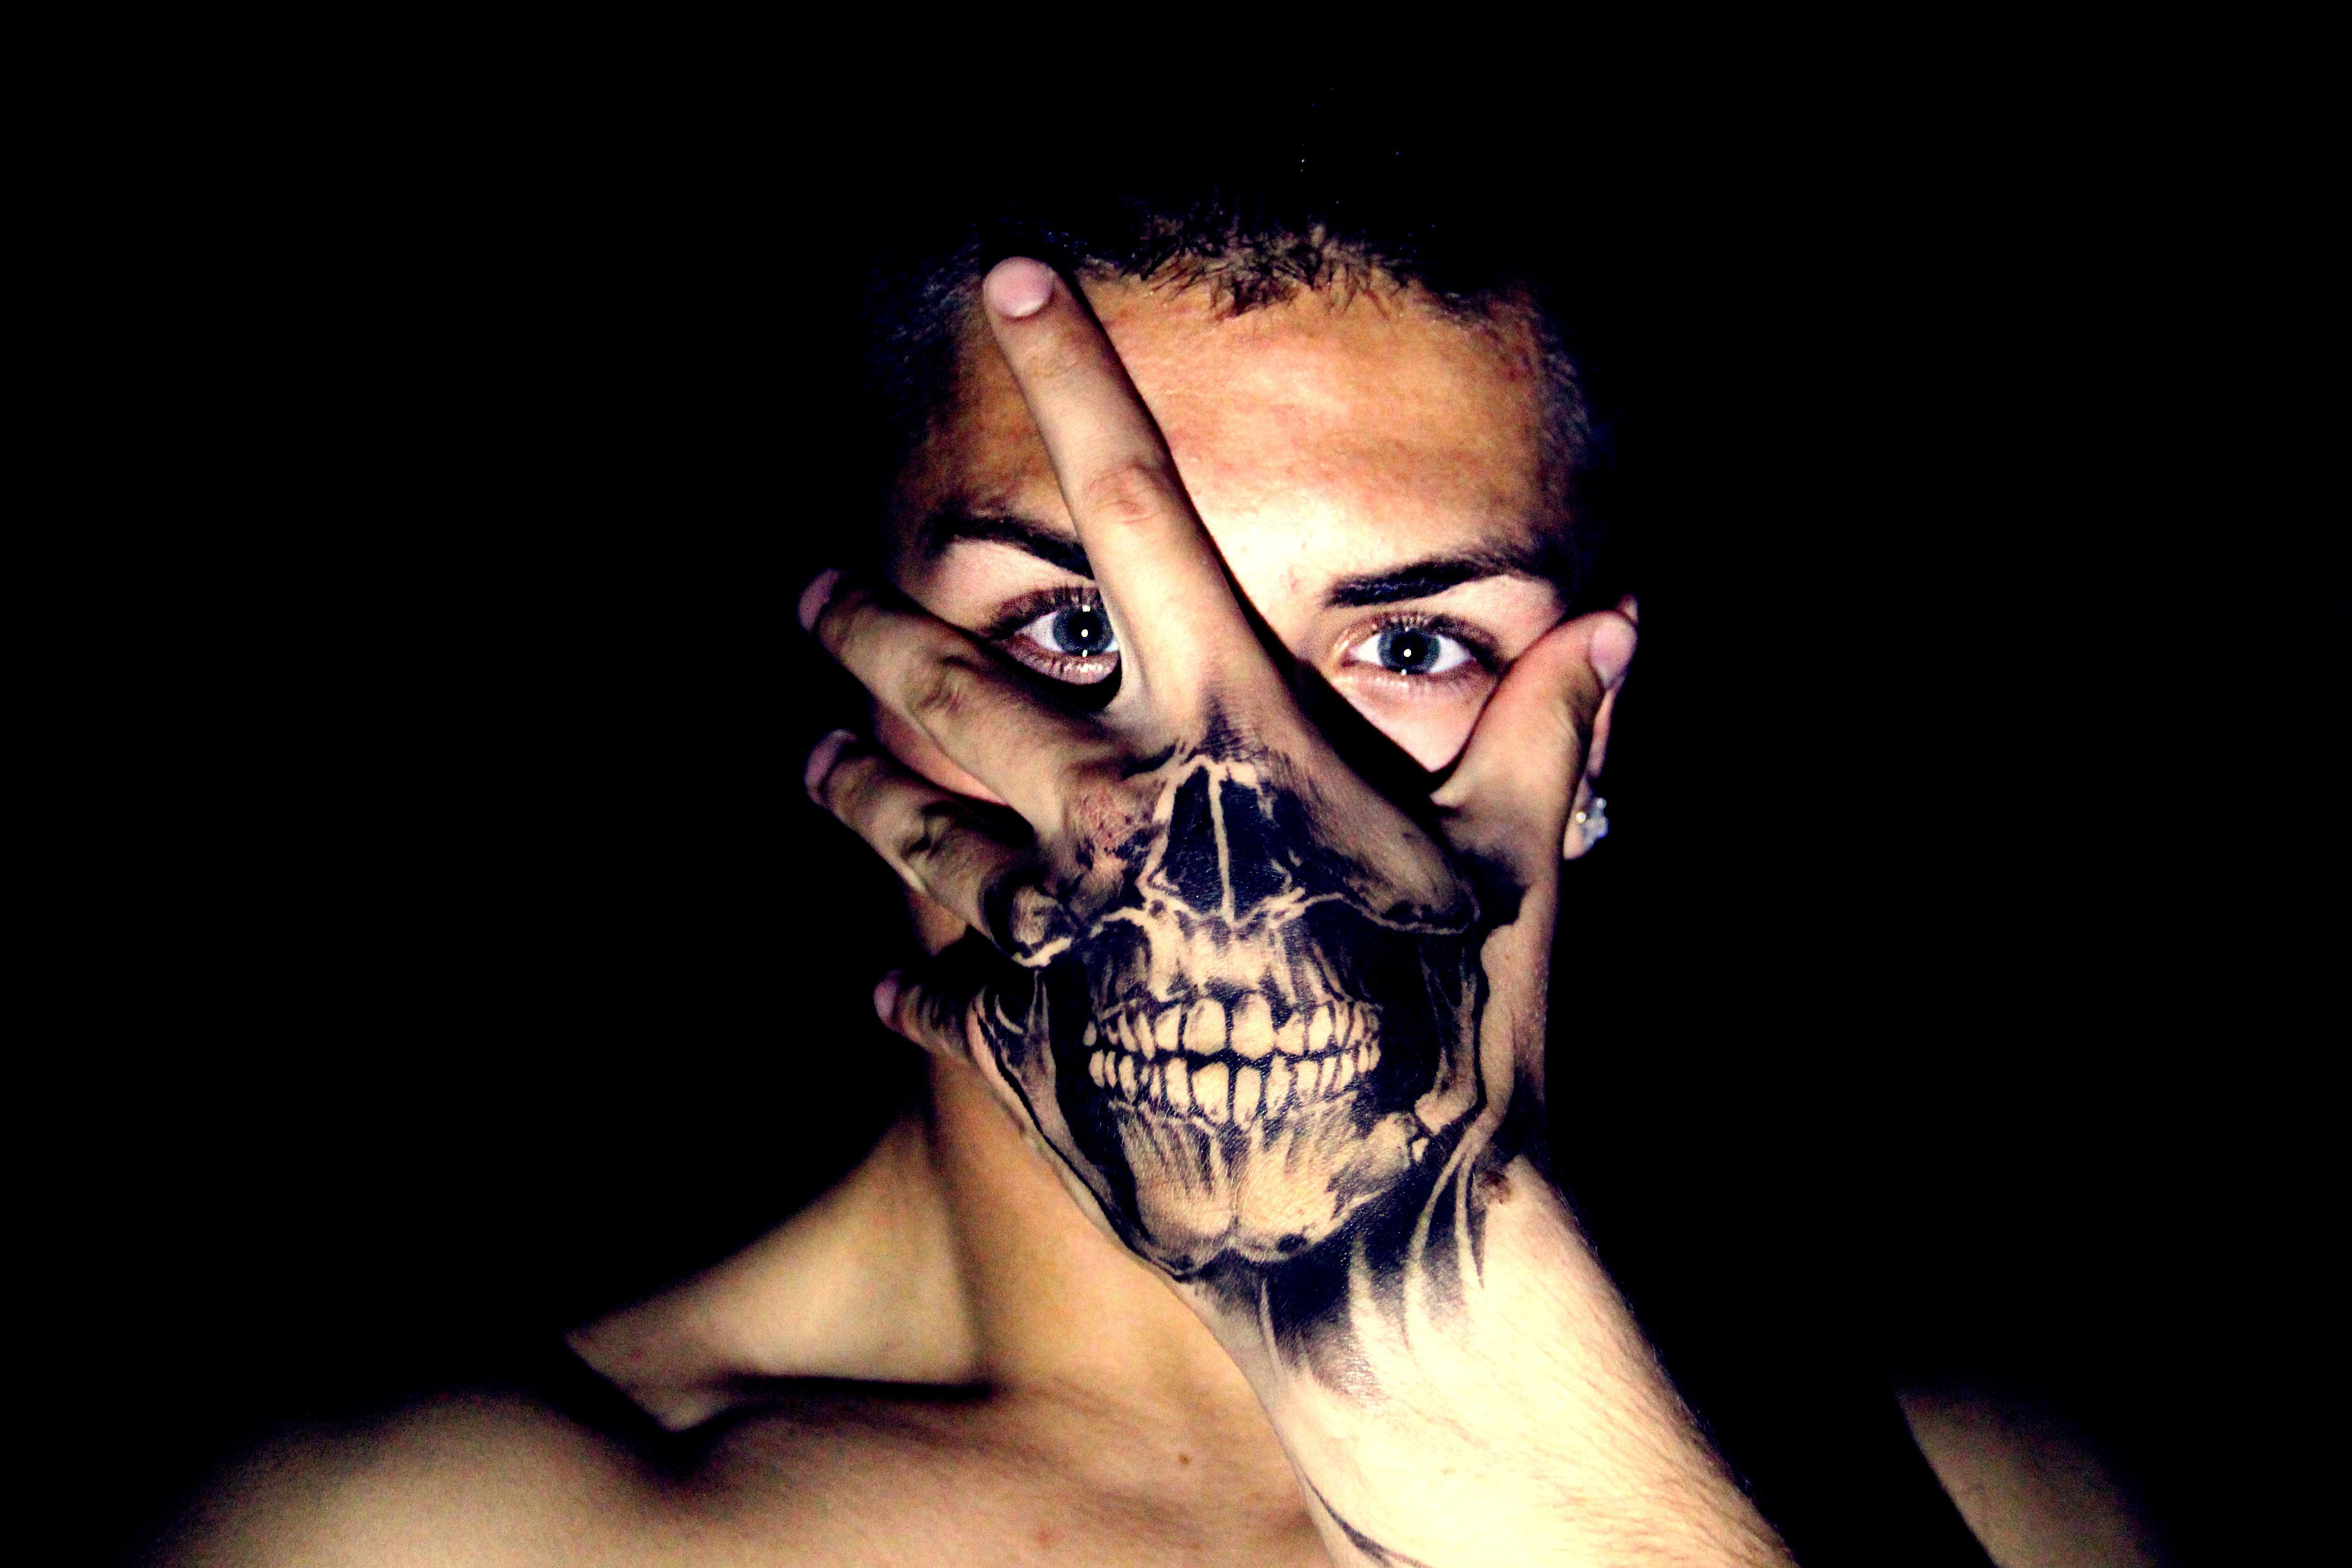 Tattoo Skull on hand. Great idea for halloween this month